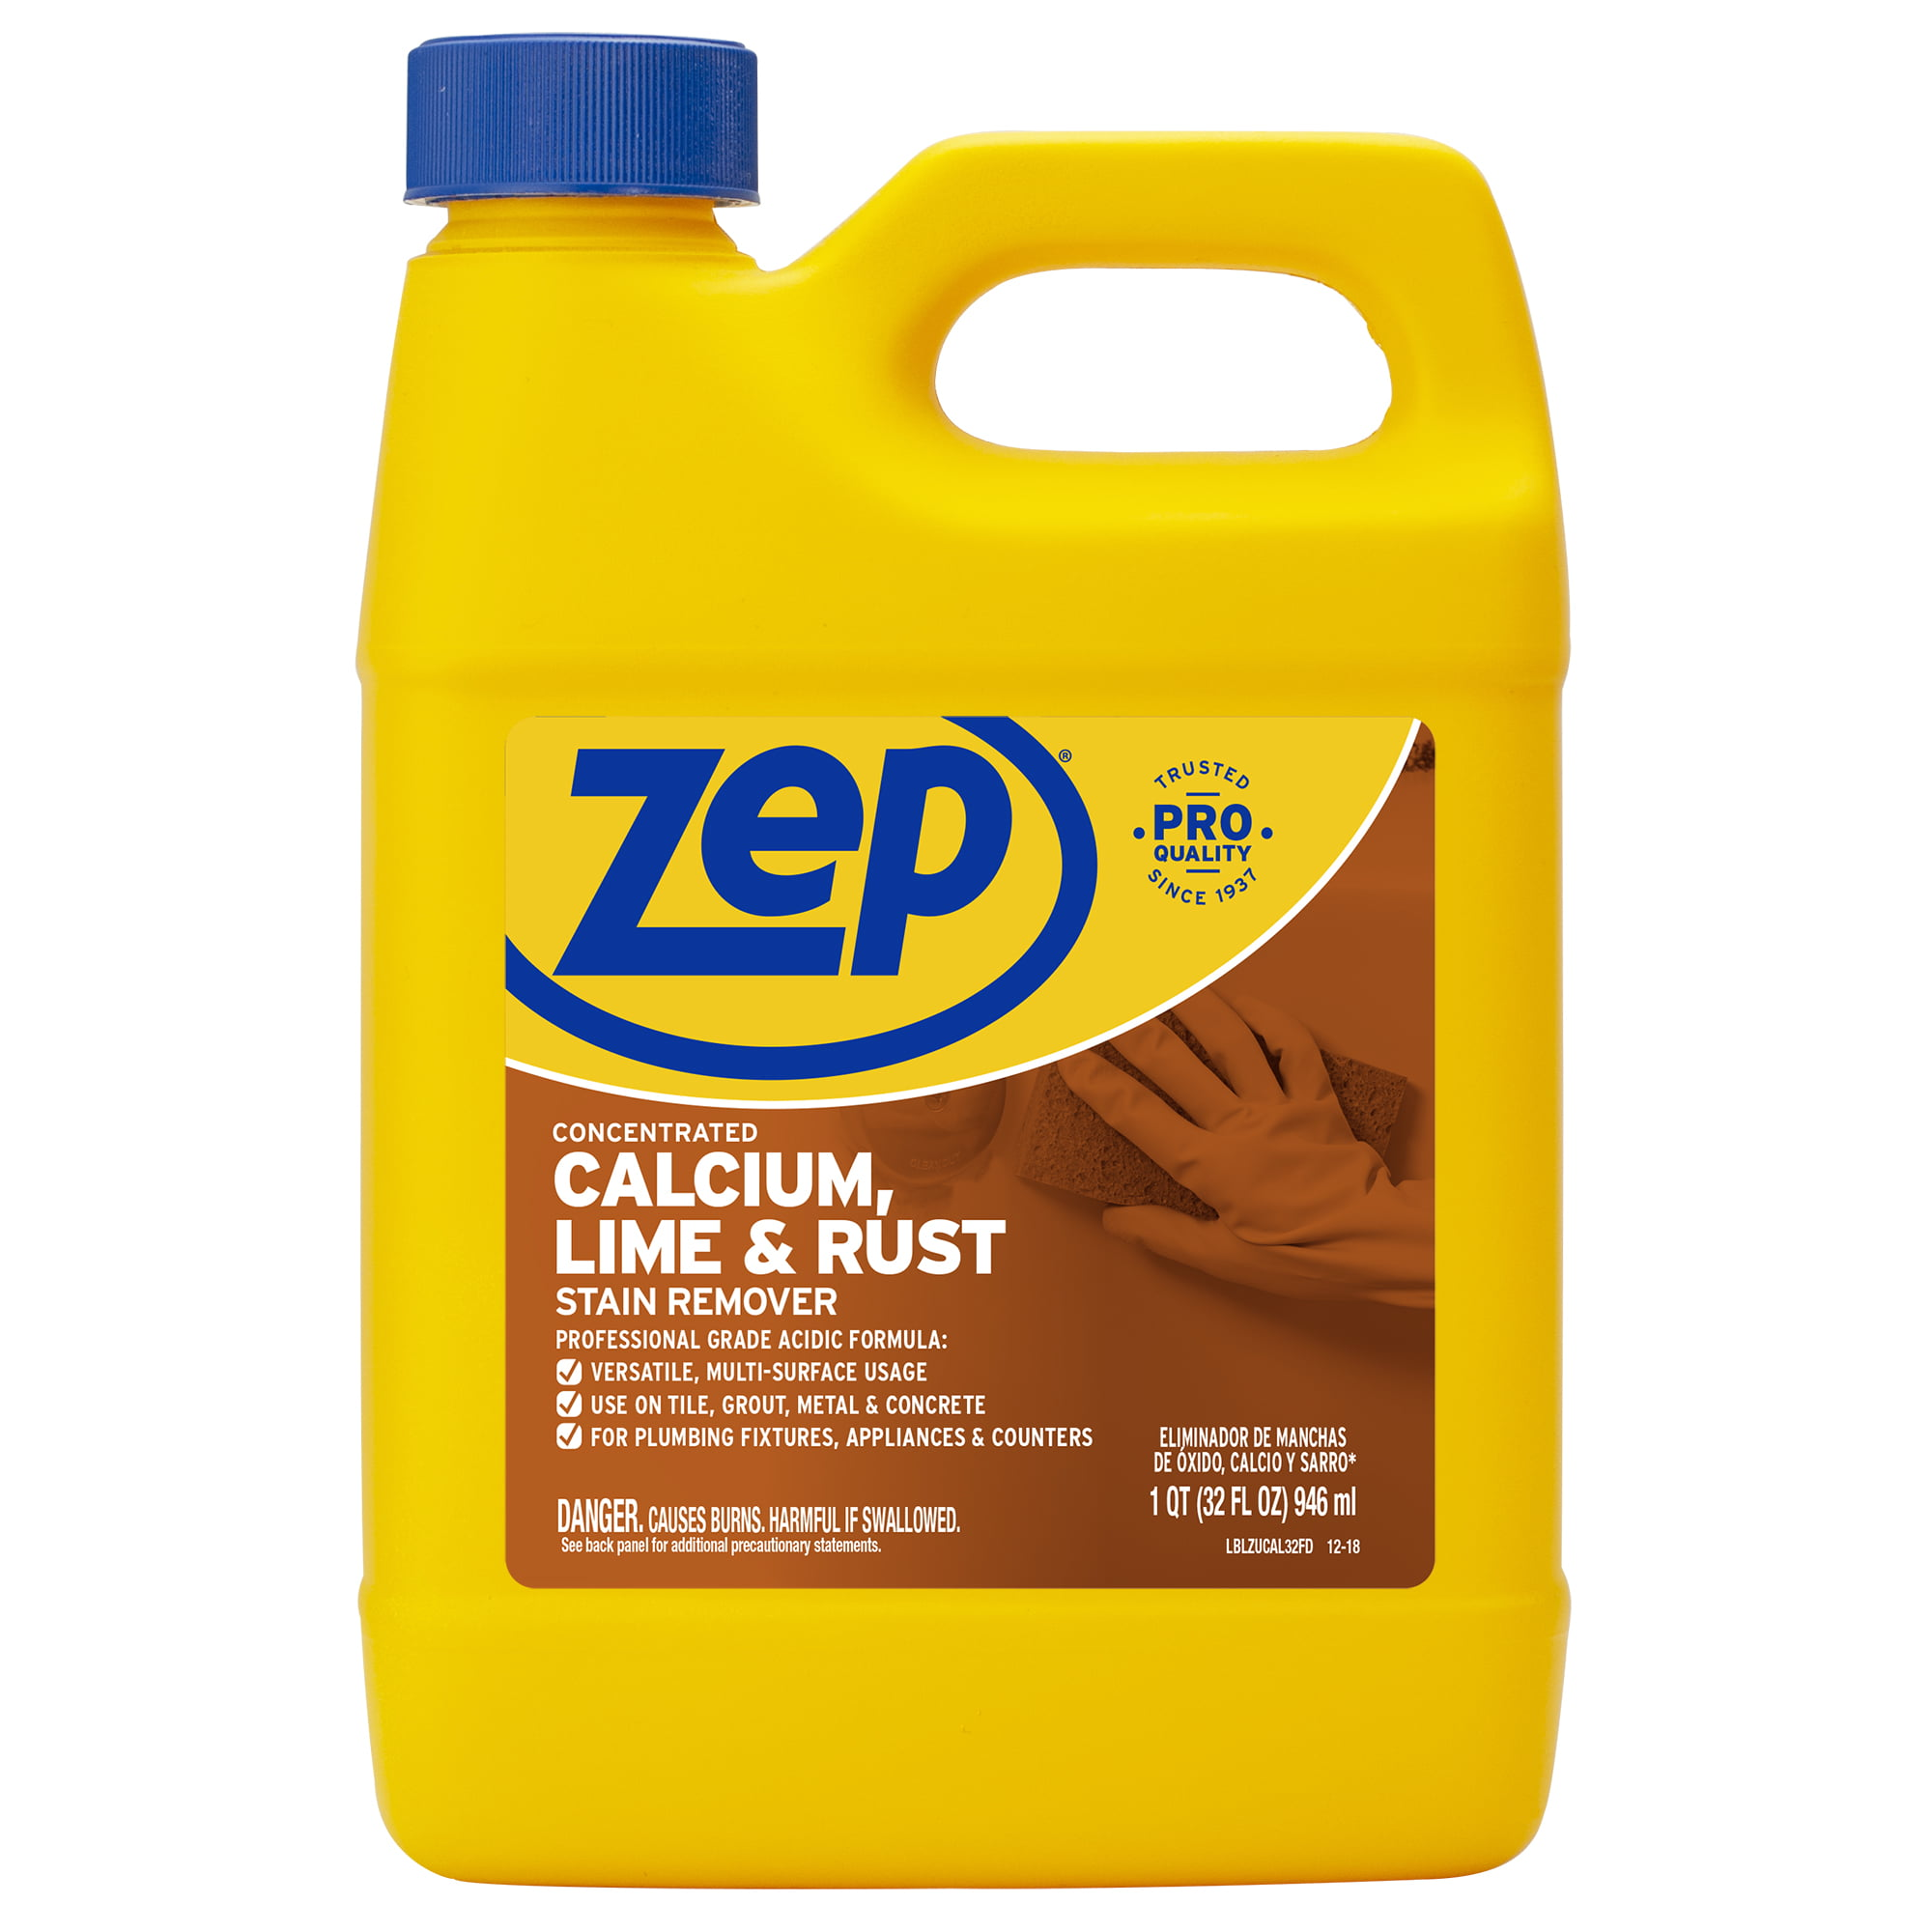 Zep Calcium, Lime and Rust Stain Remover, 32 oz